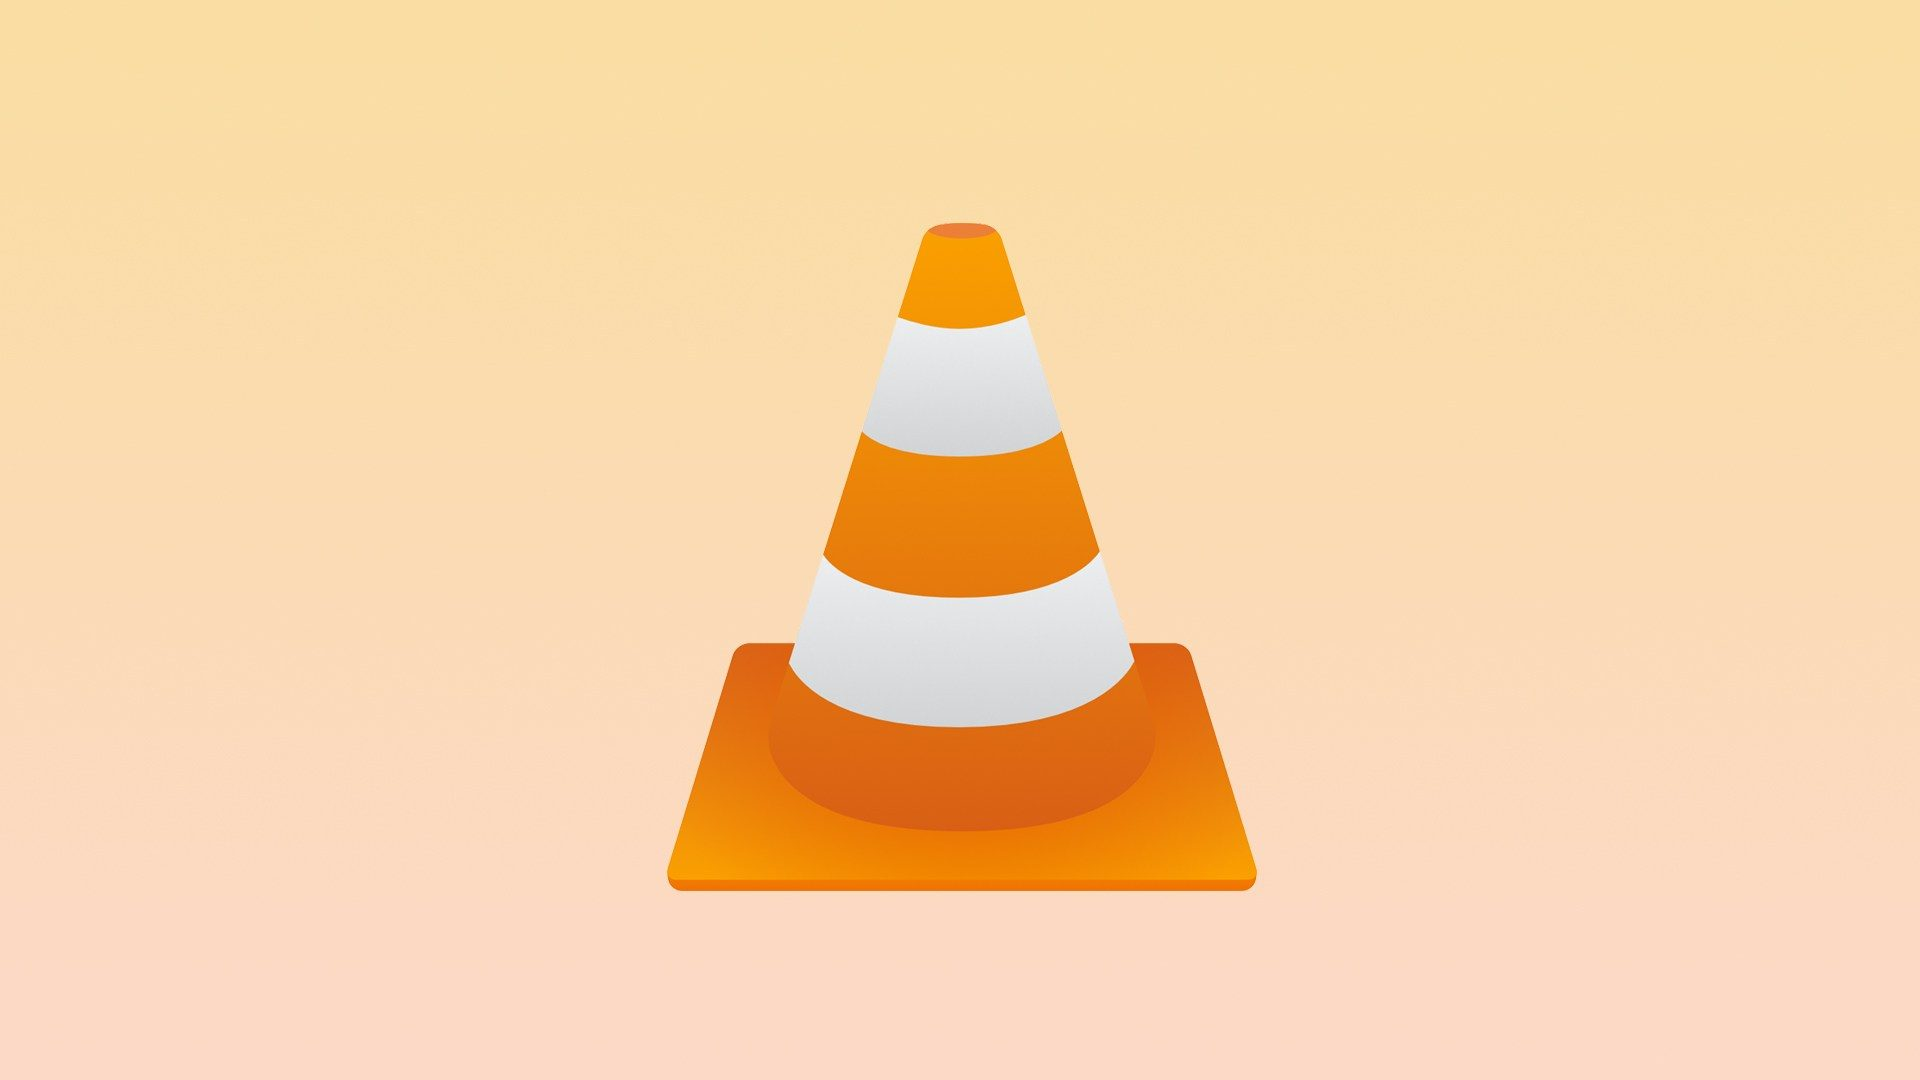 VLC Media Player gets native support for the M1 chip